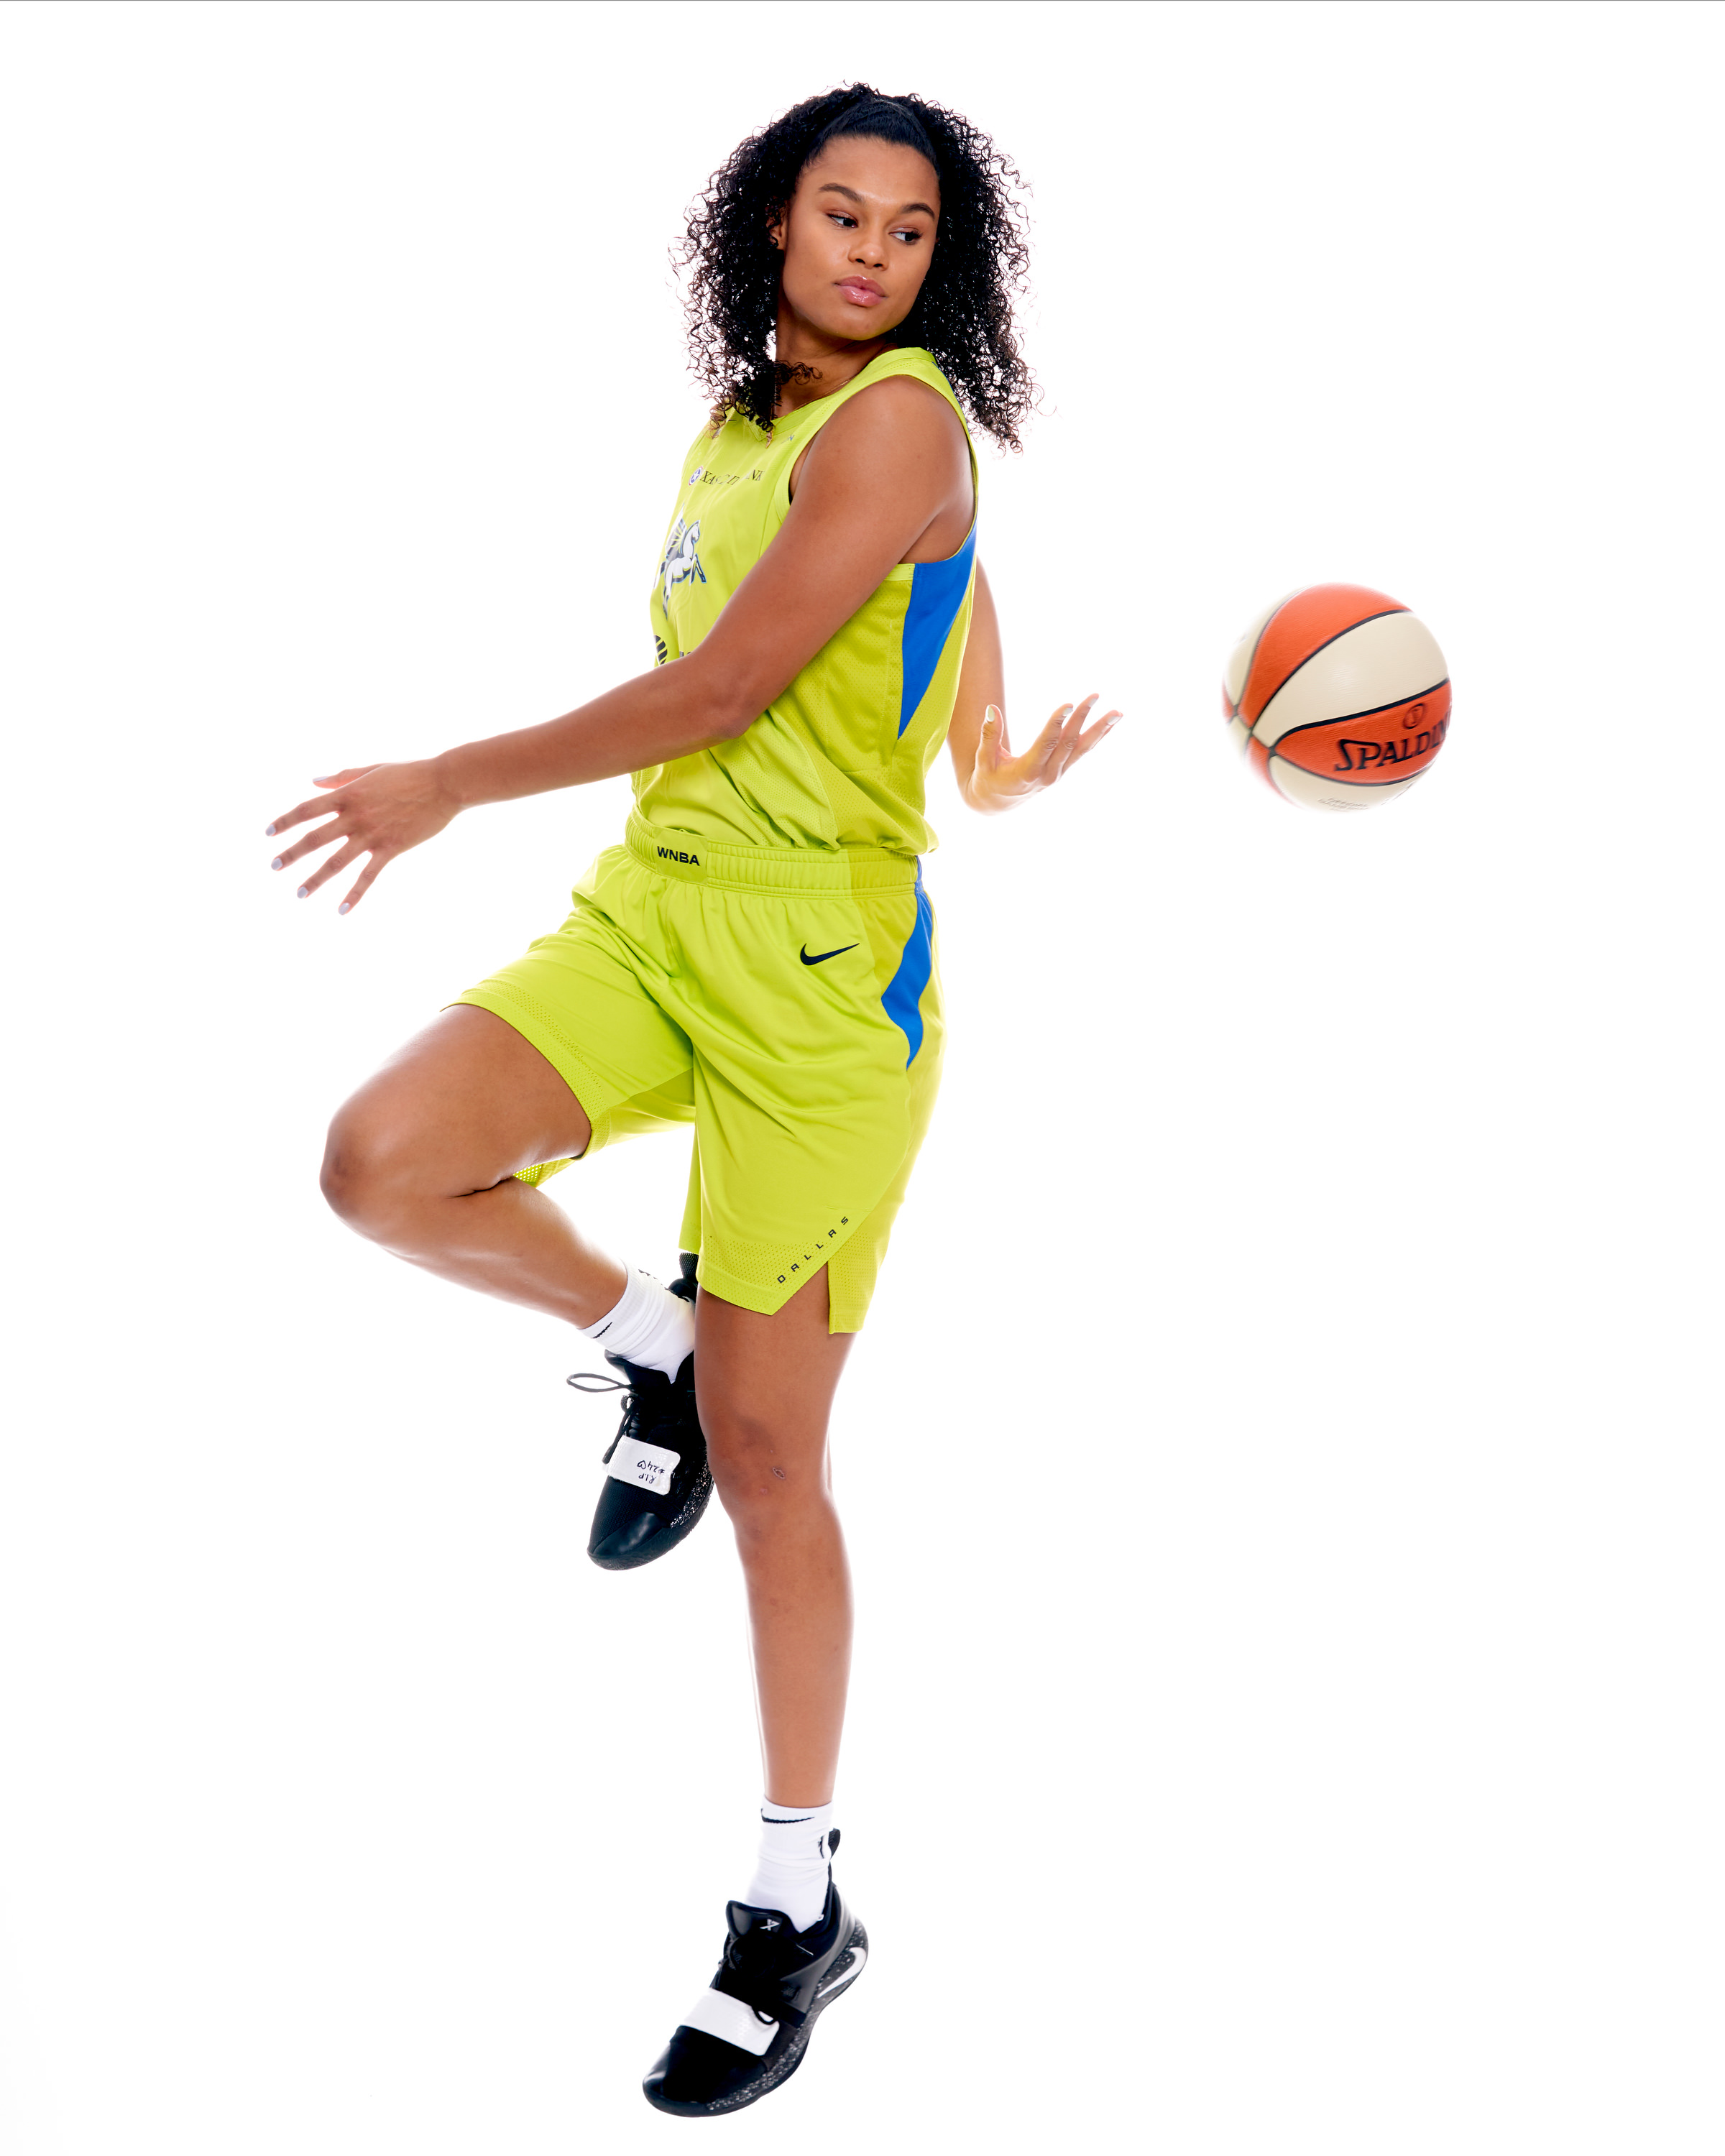 edit_06-26-2020_DallasWings_028501.JPG